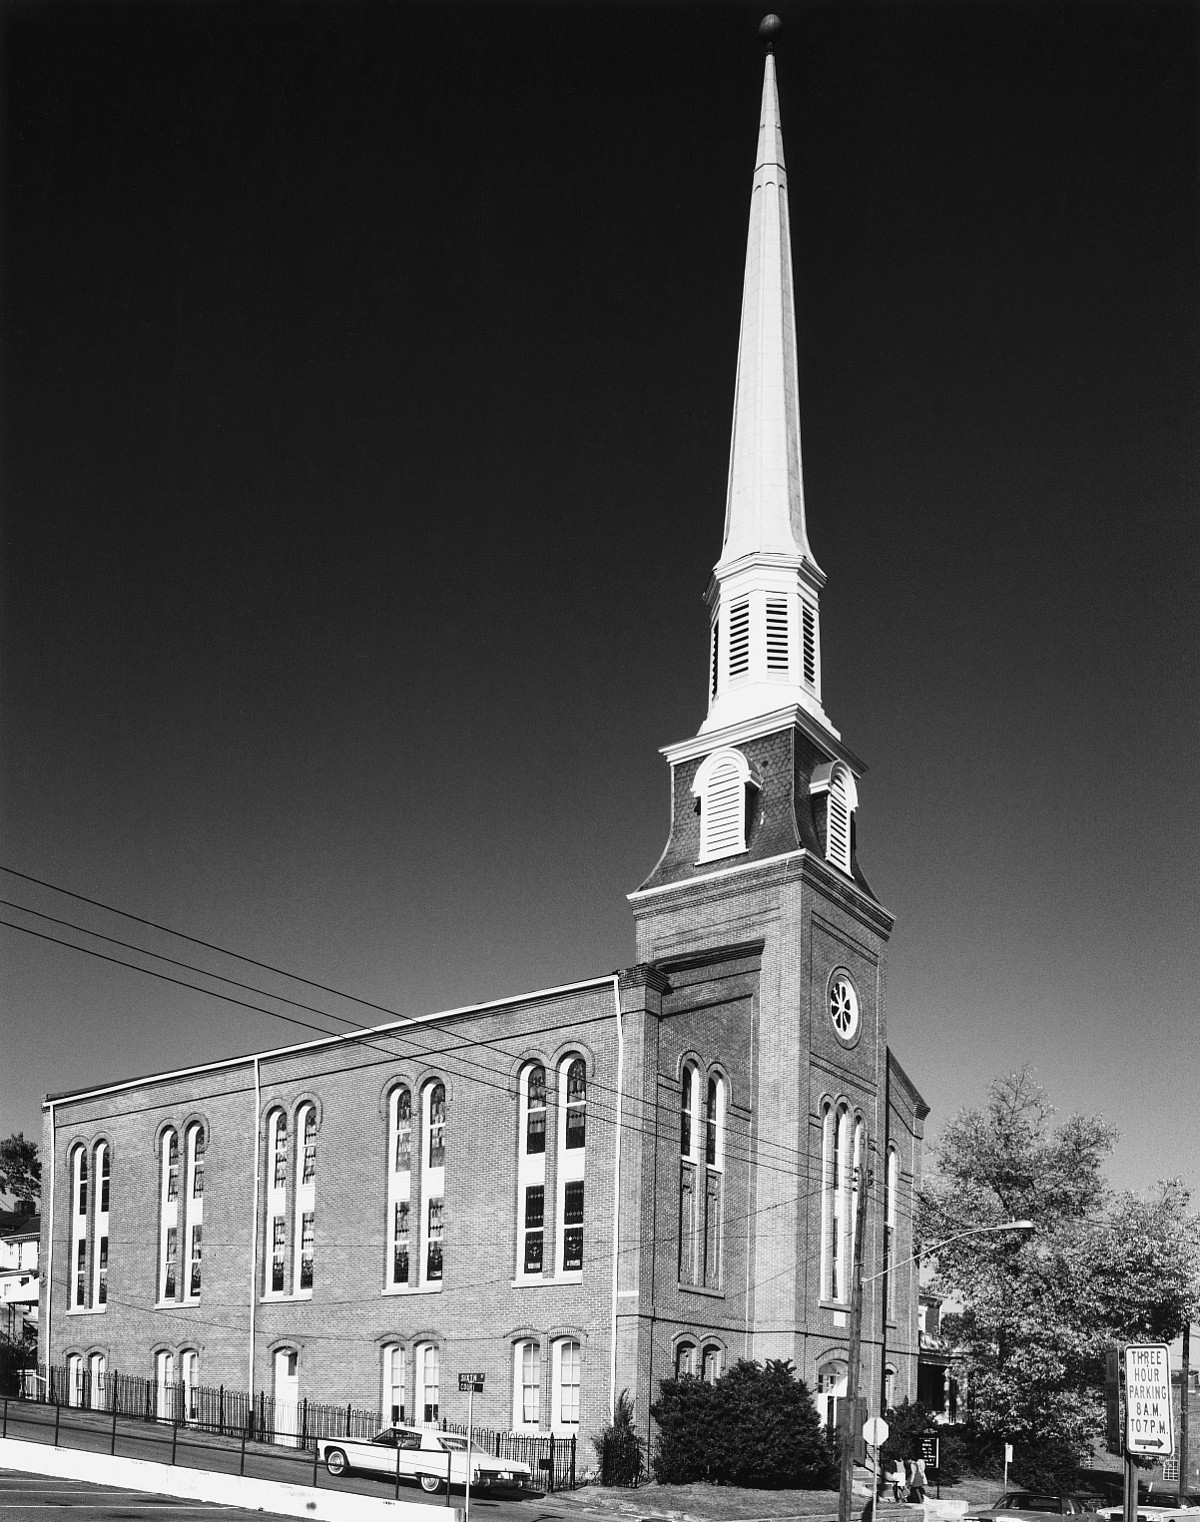 Court Street Baptist Church